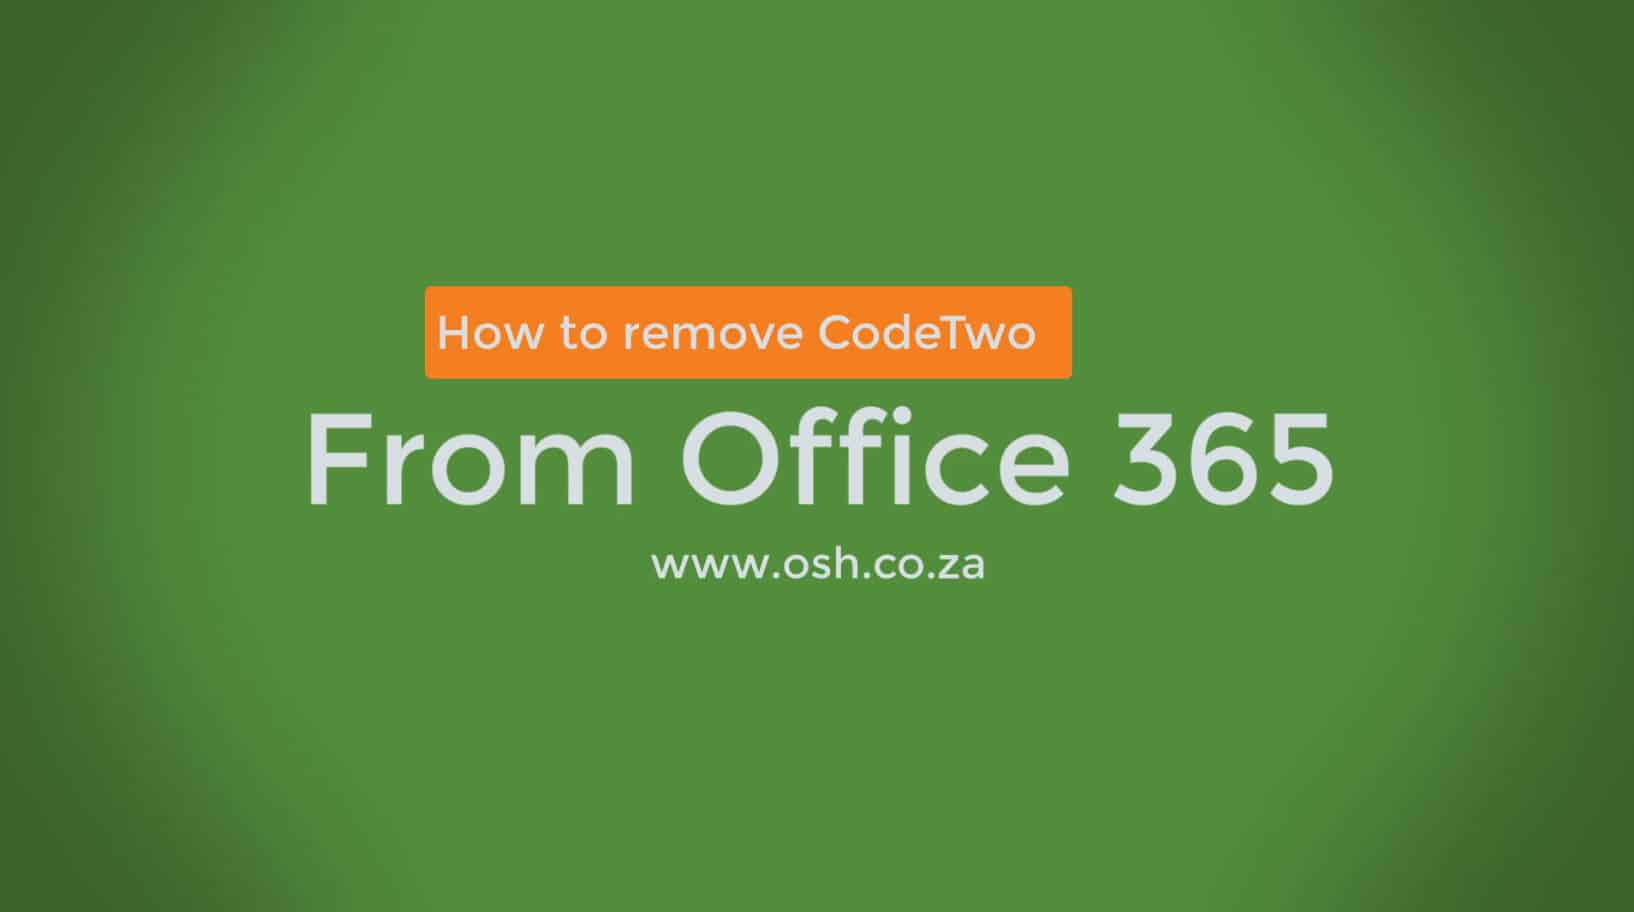 Uninstall CodeTwo from Office 365